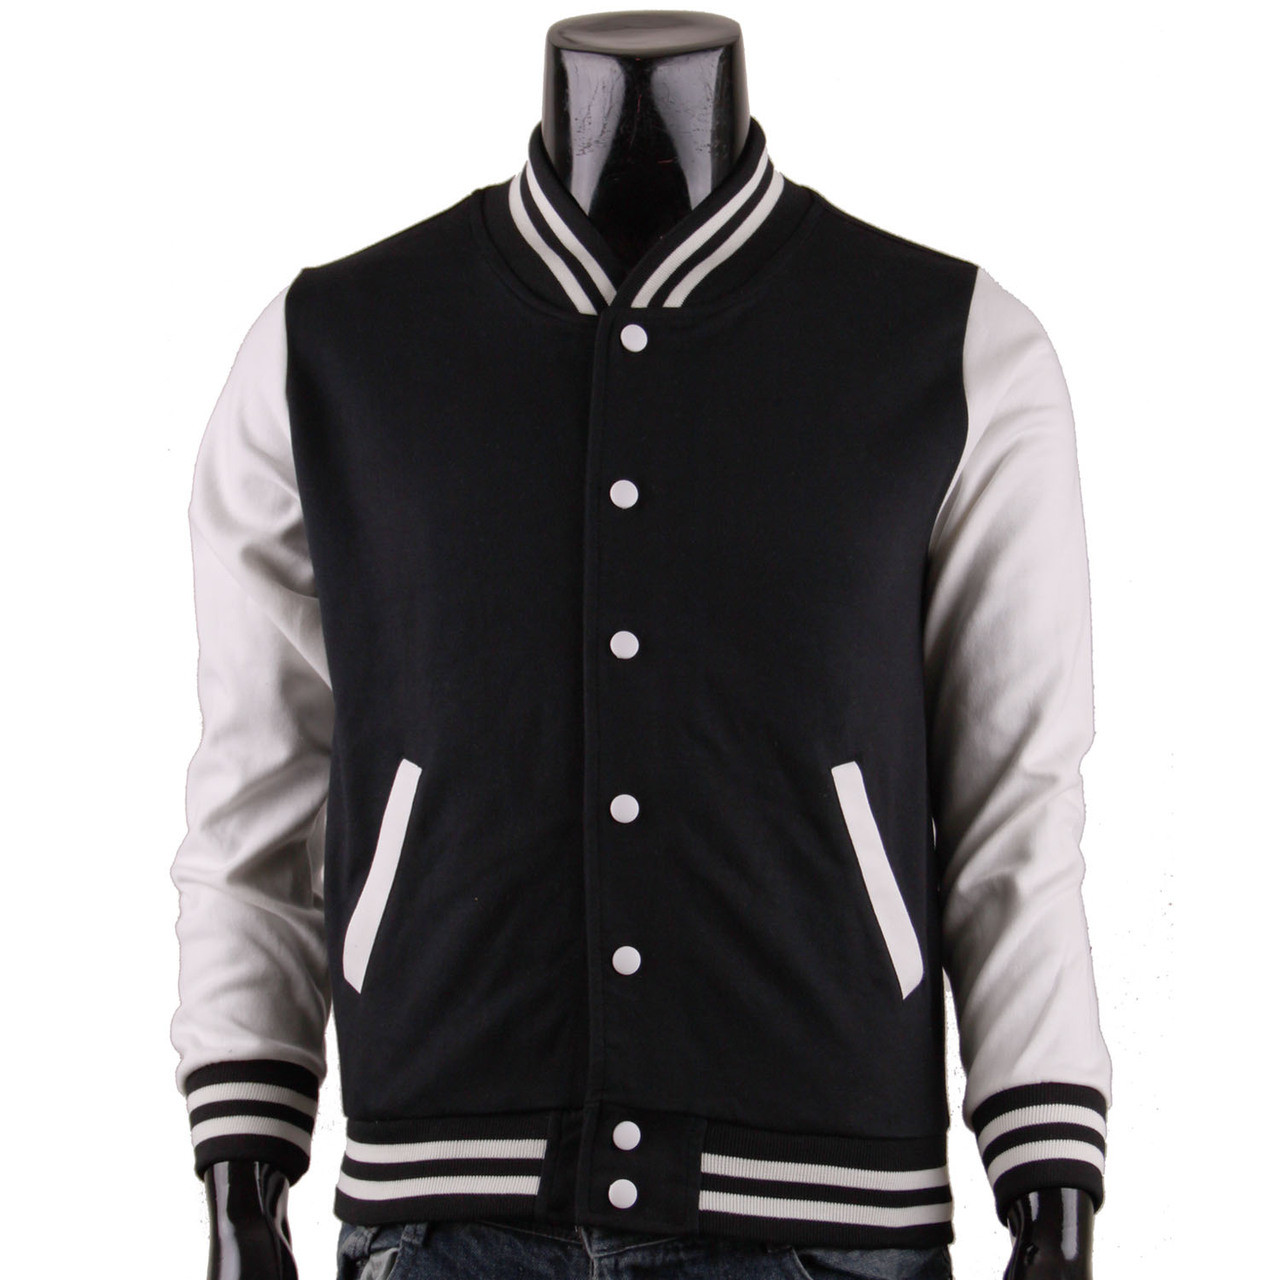 A letter jacket is a baseball-styled jacket traditionally worn by high school and college students in the United States to represent school and team pride as well as to display personal awards earned in athletics, academics or activities. Letter jackets are also known as